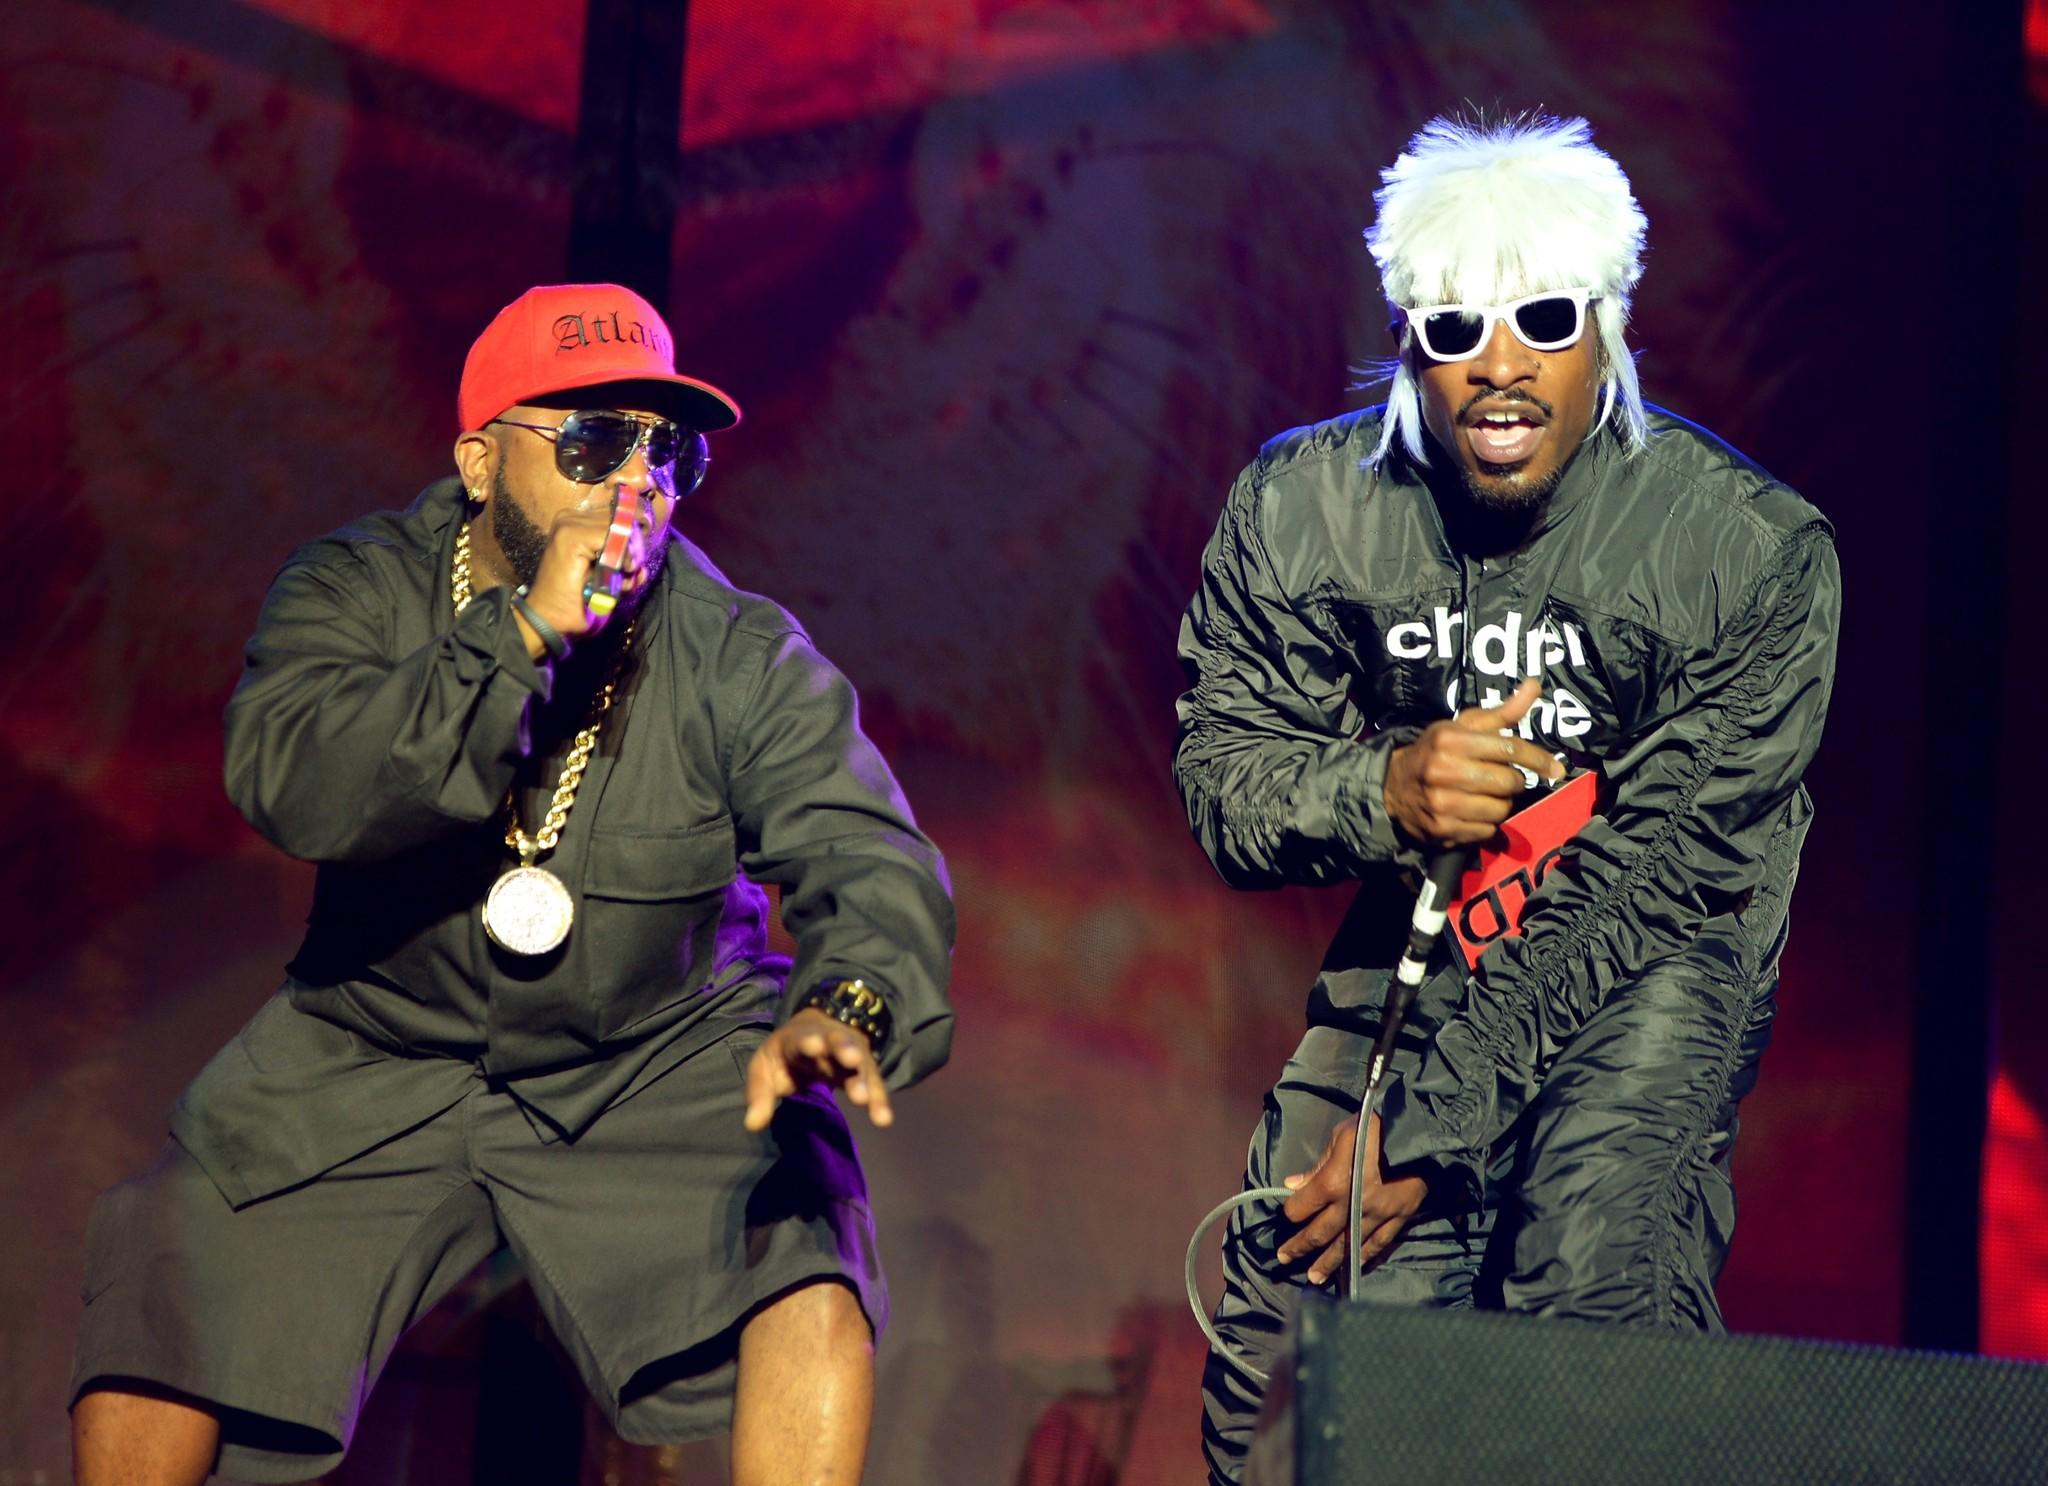 Big Boi (L) and Andre 3000 of Outkast perform onstage during day 3 of the Firefly Music Festival on June 21, 2014 in Dover, Delaware.